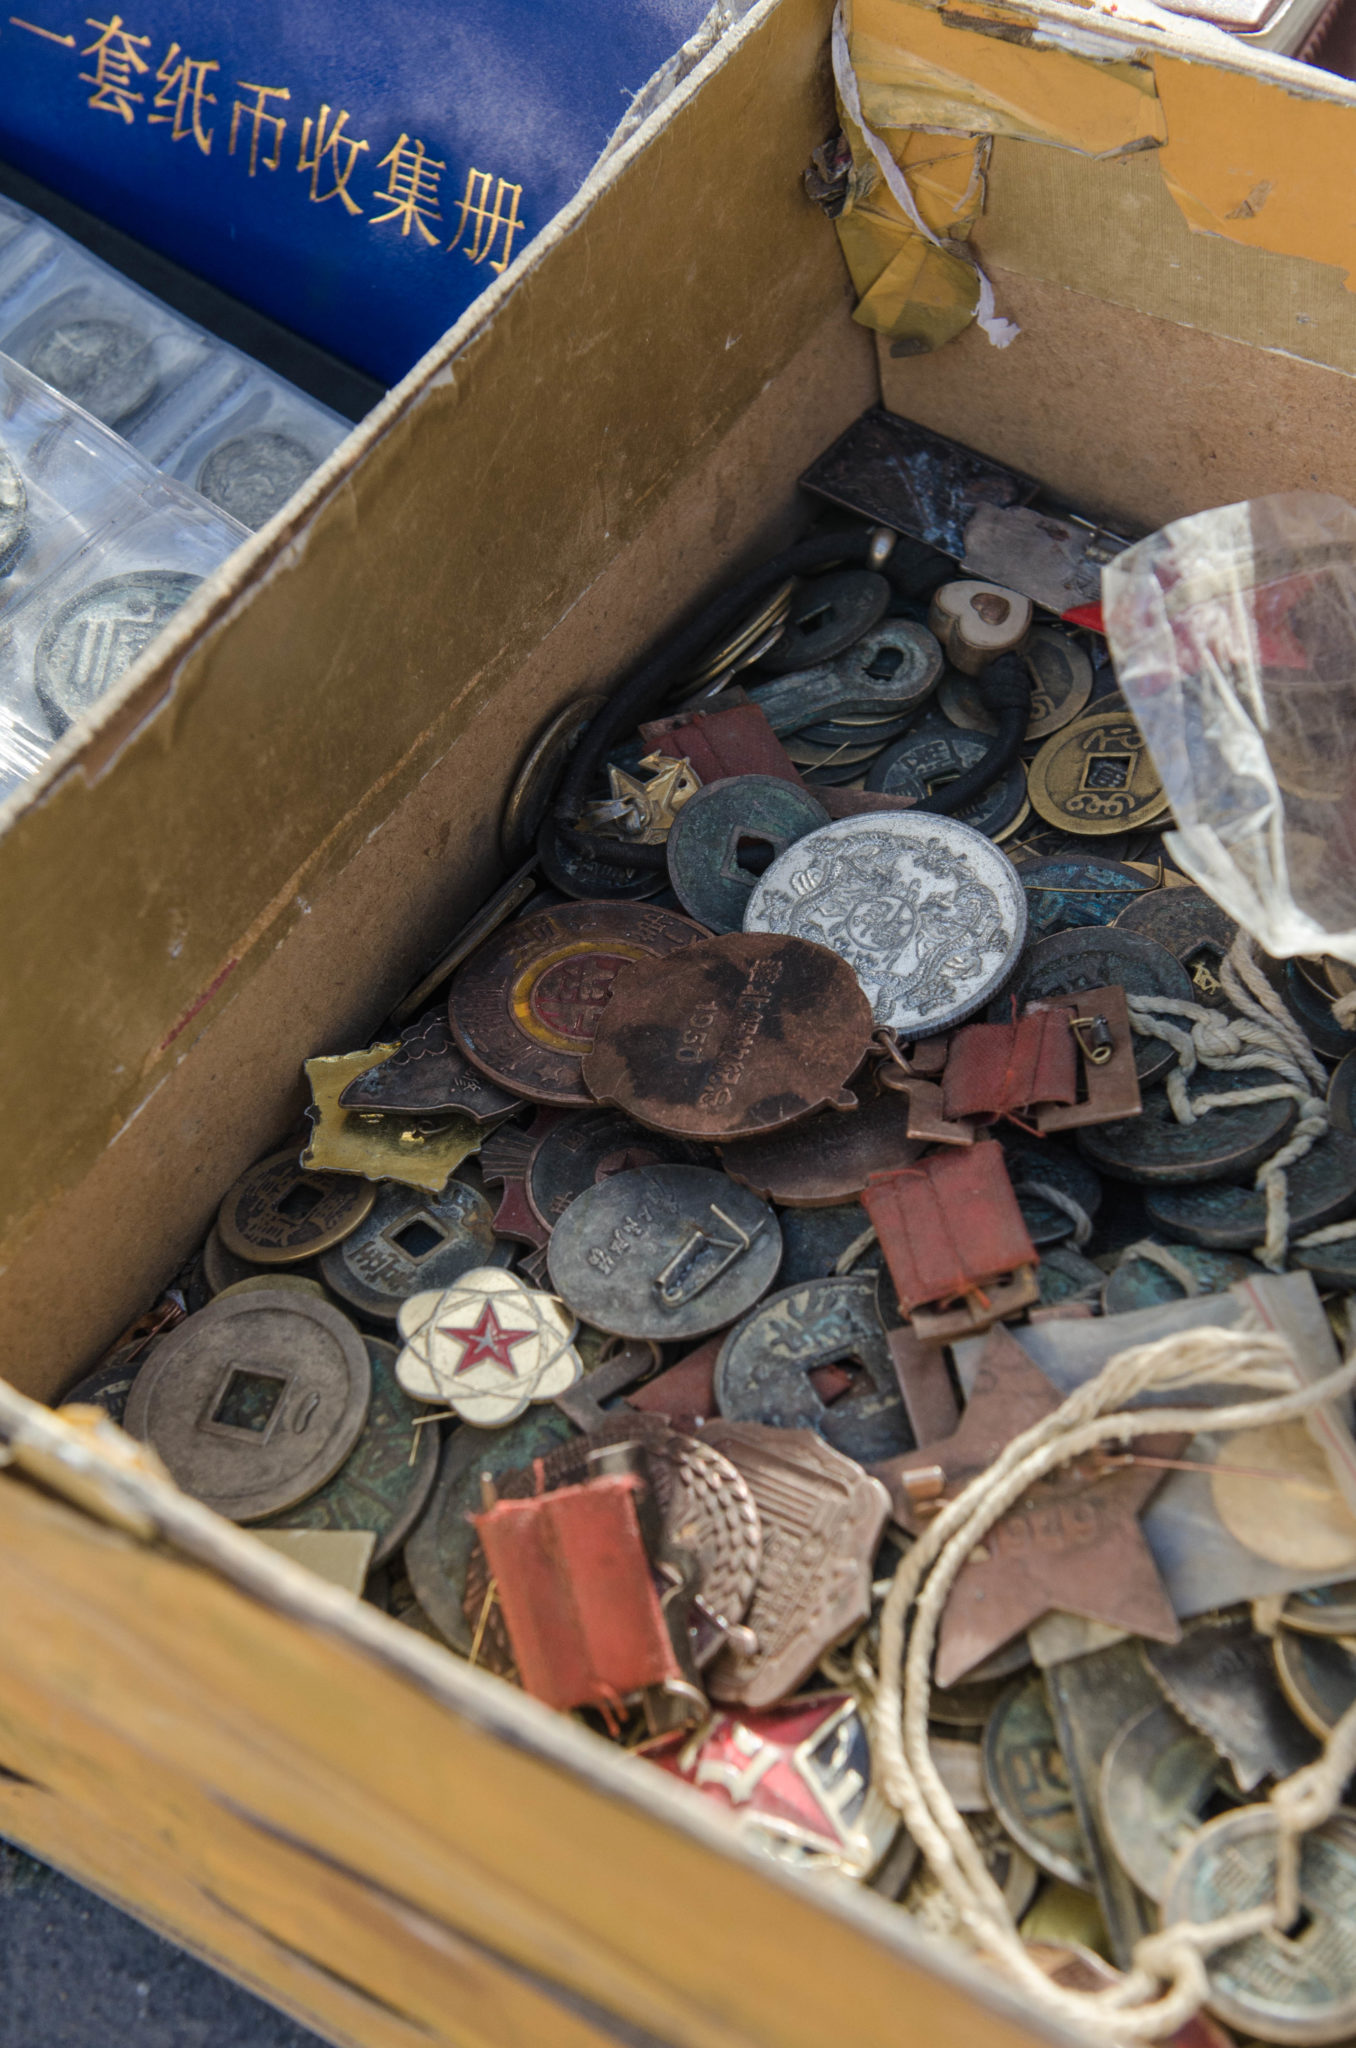 The Panjiayuan Antique Market in Beijing: Coins from back in the days.